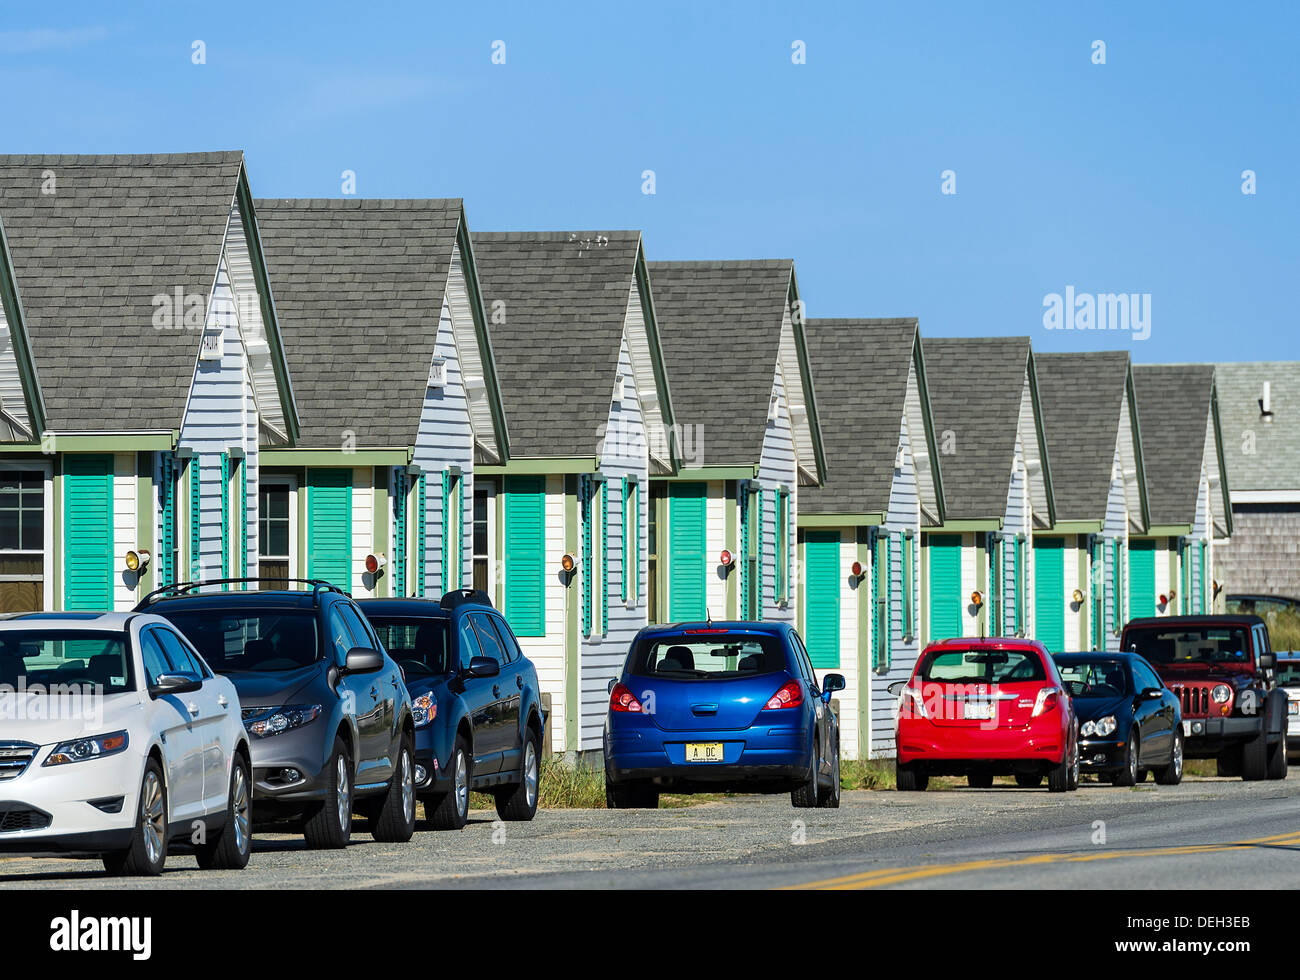 Waterfront rental cottages, Truro, Cape Cod, Massachusetts, USA - Stock Image